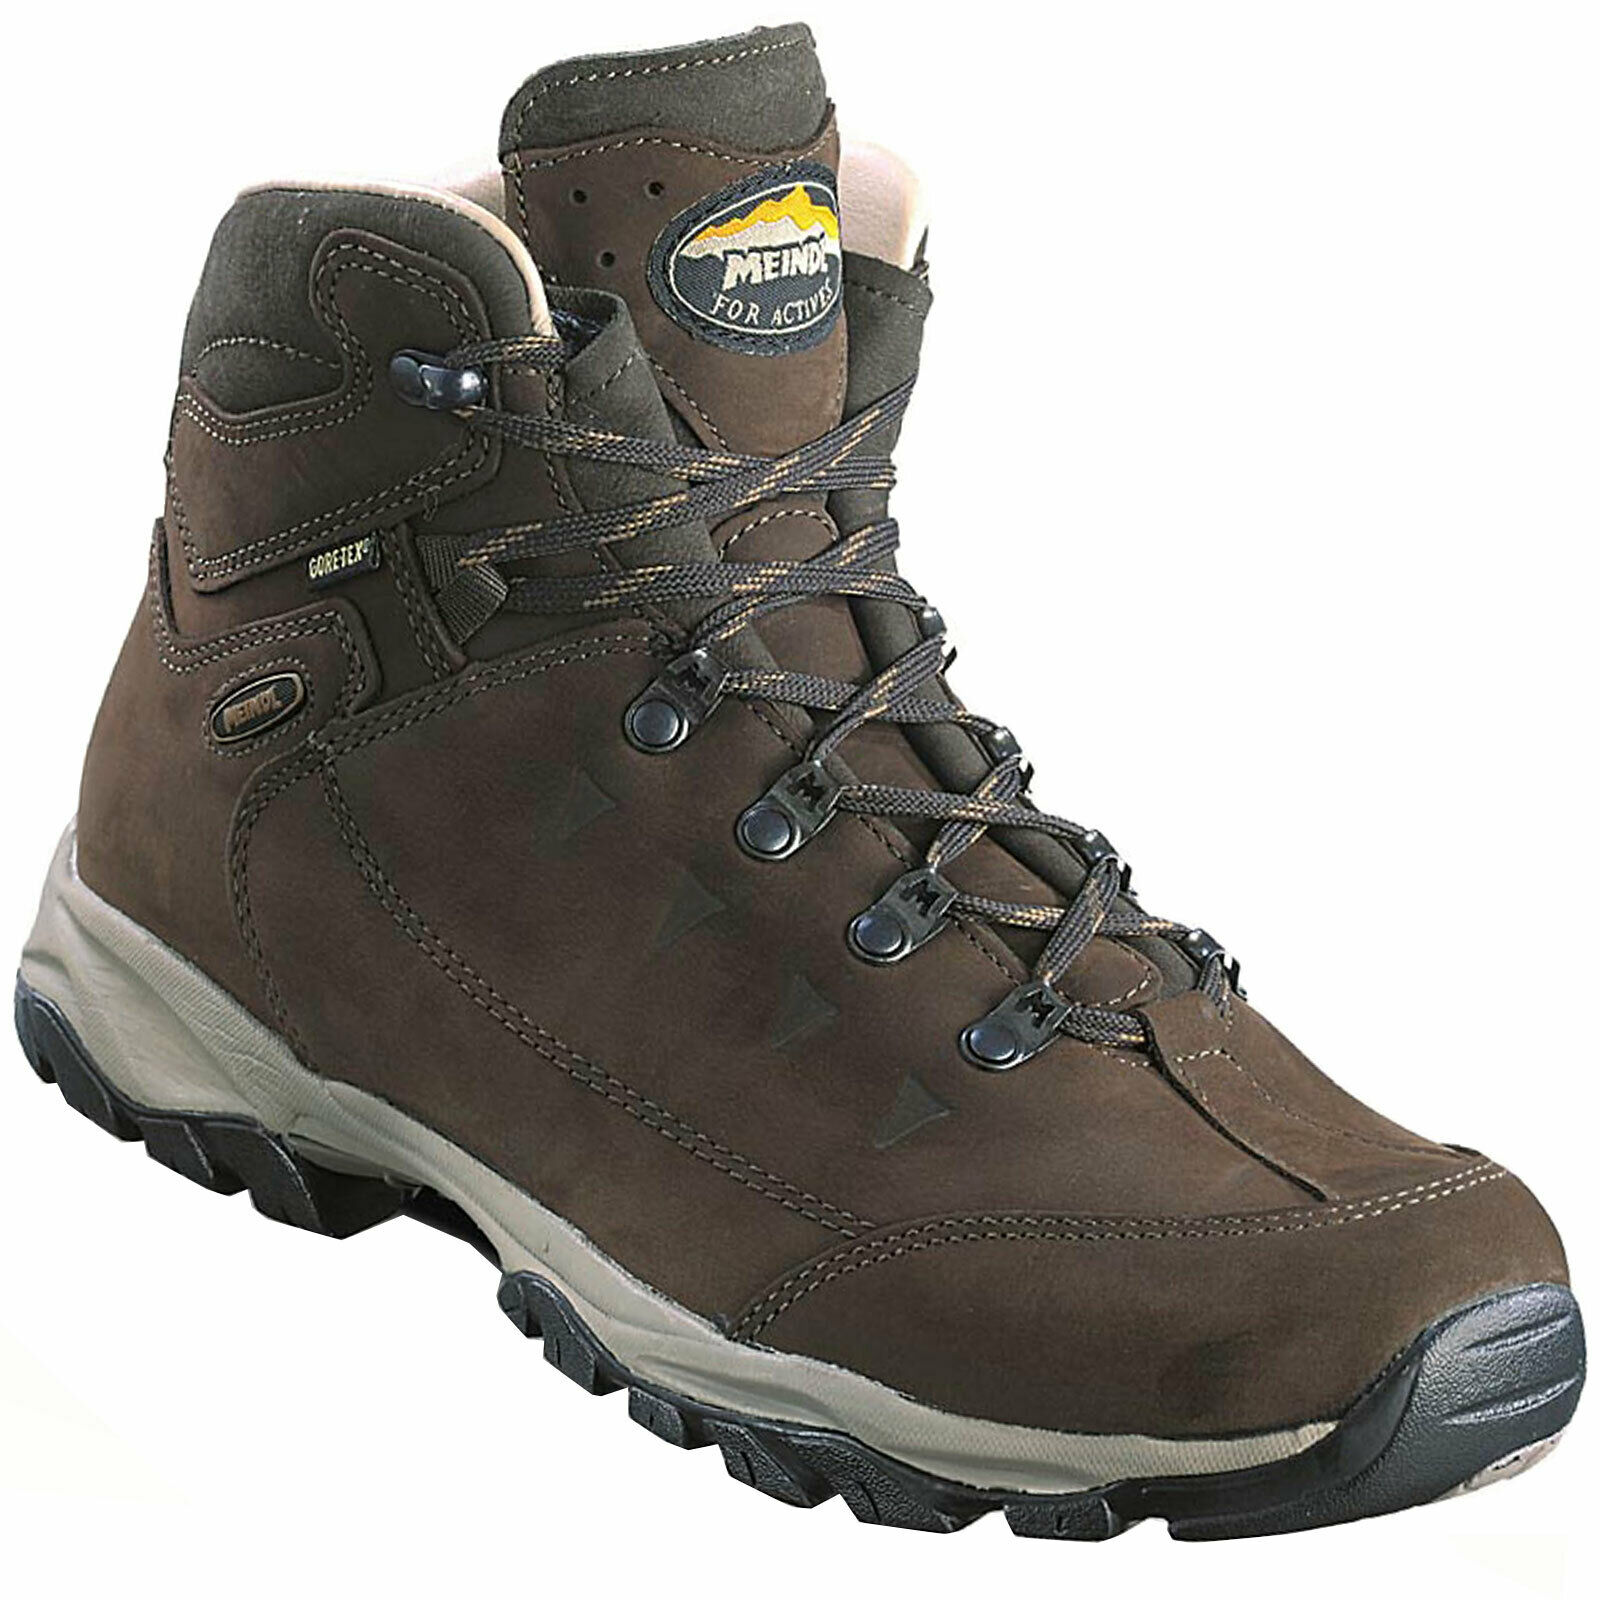 Meindl Ohio GTX Mens  Hiking shoes Gore-Tex Hiking Boots Trekking shoes New  top brand